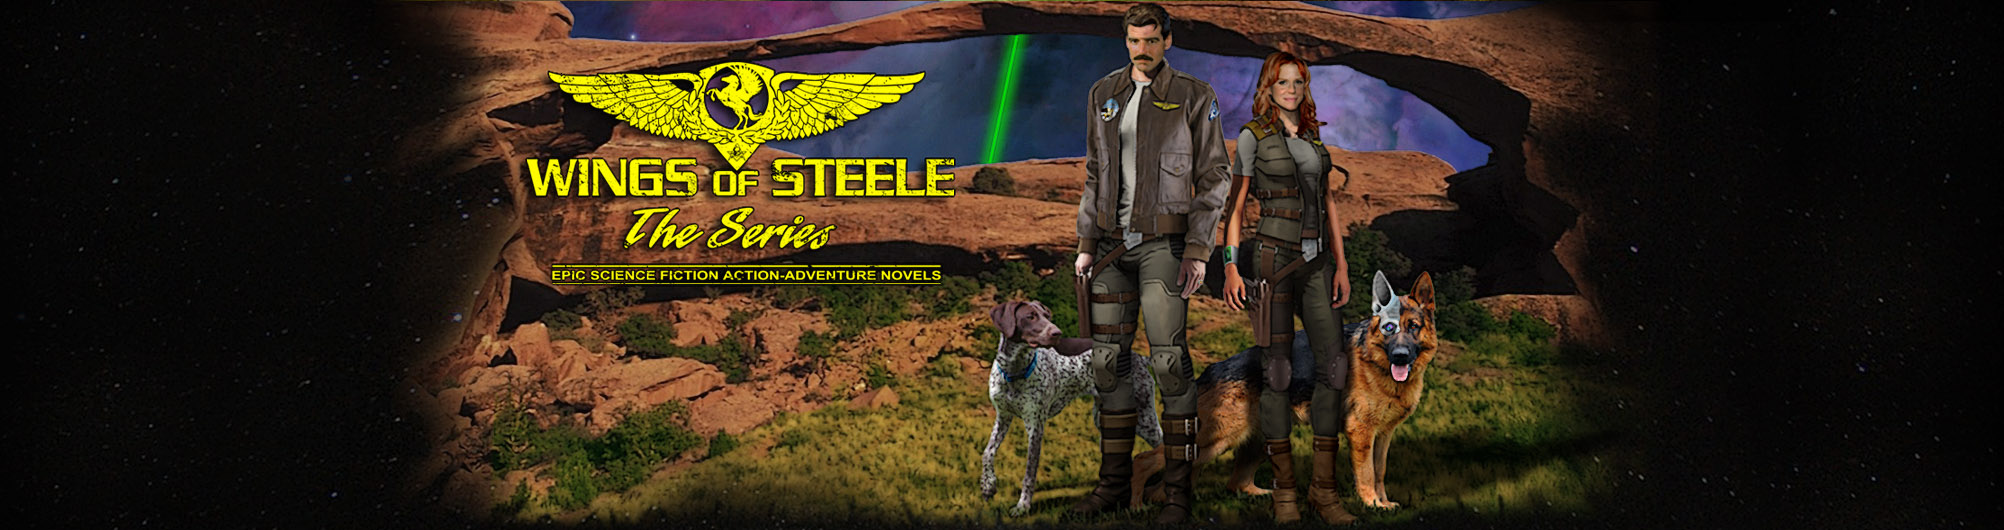 Wings of Steele- The Series